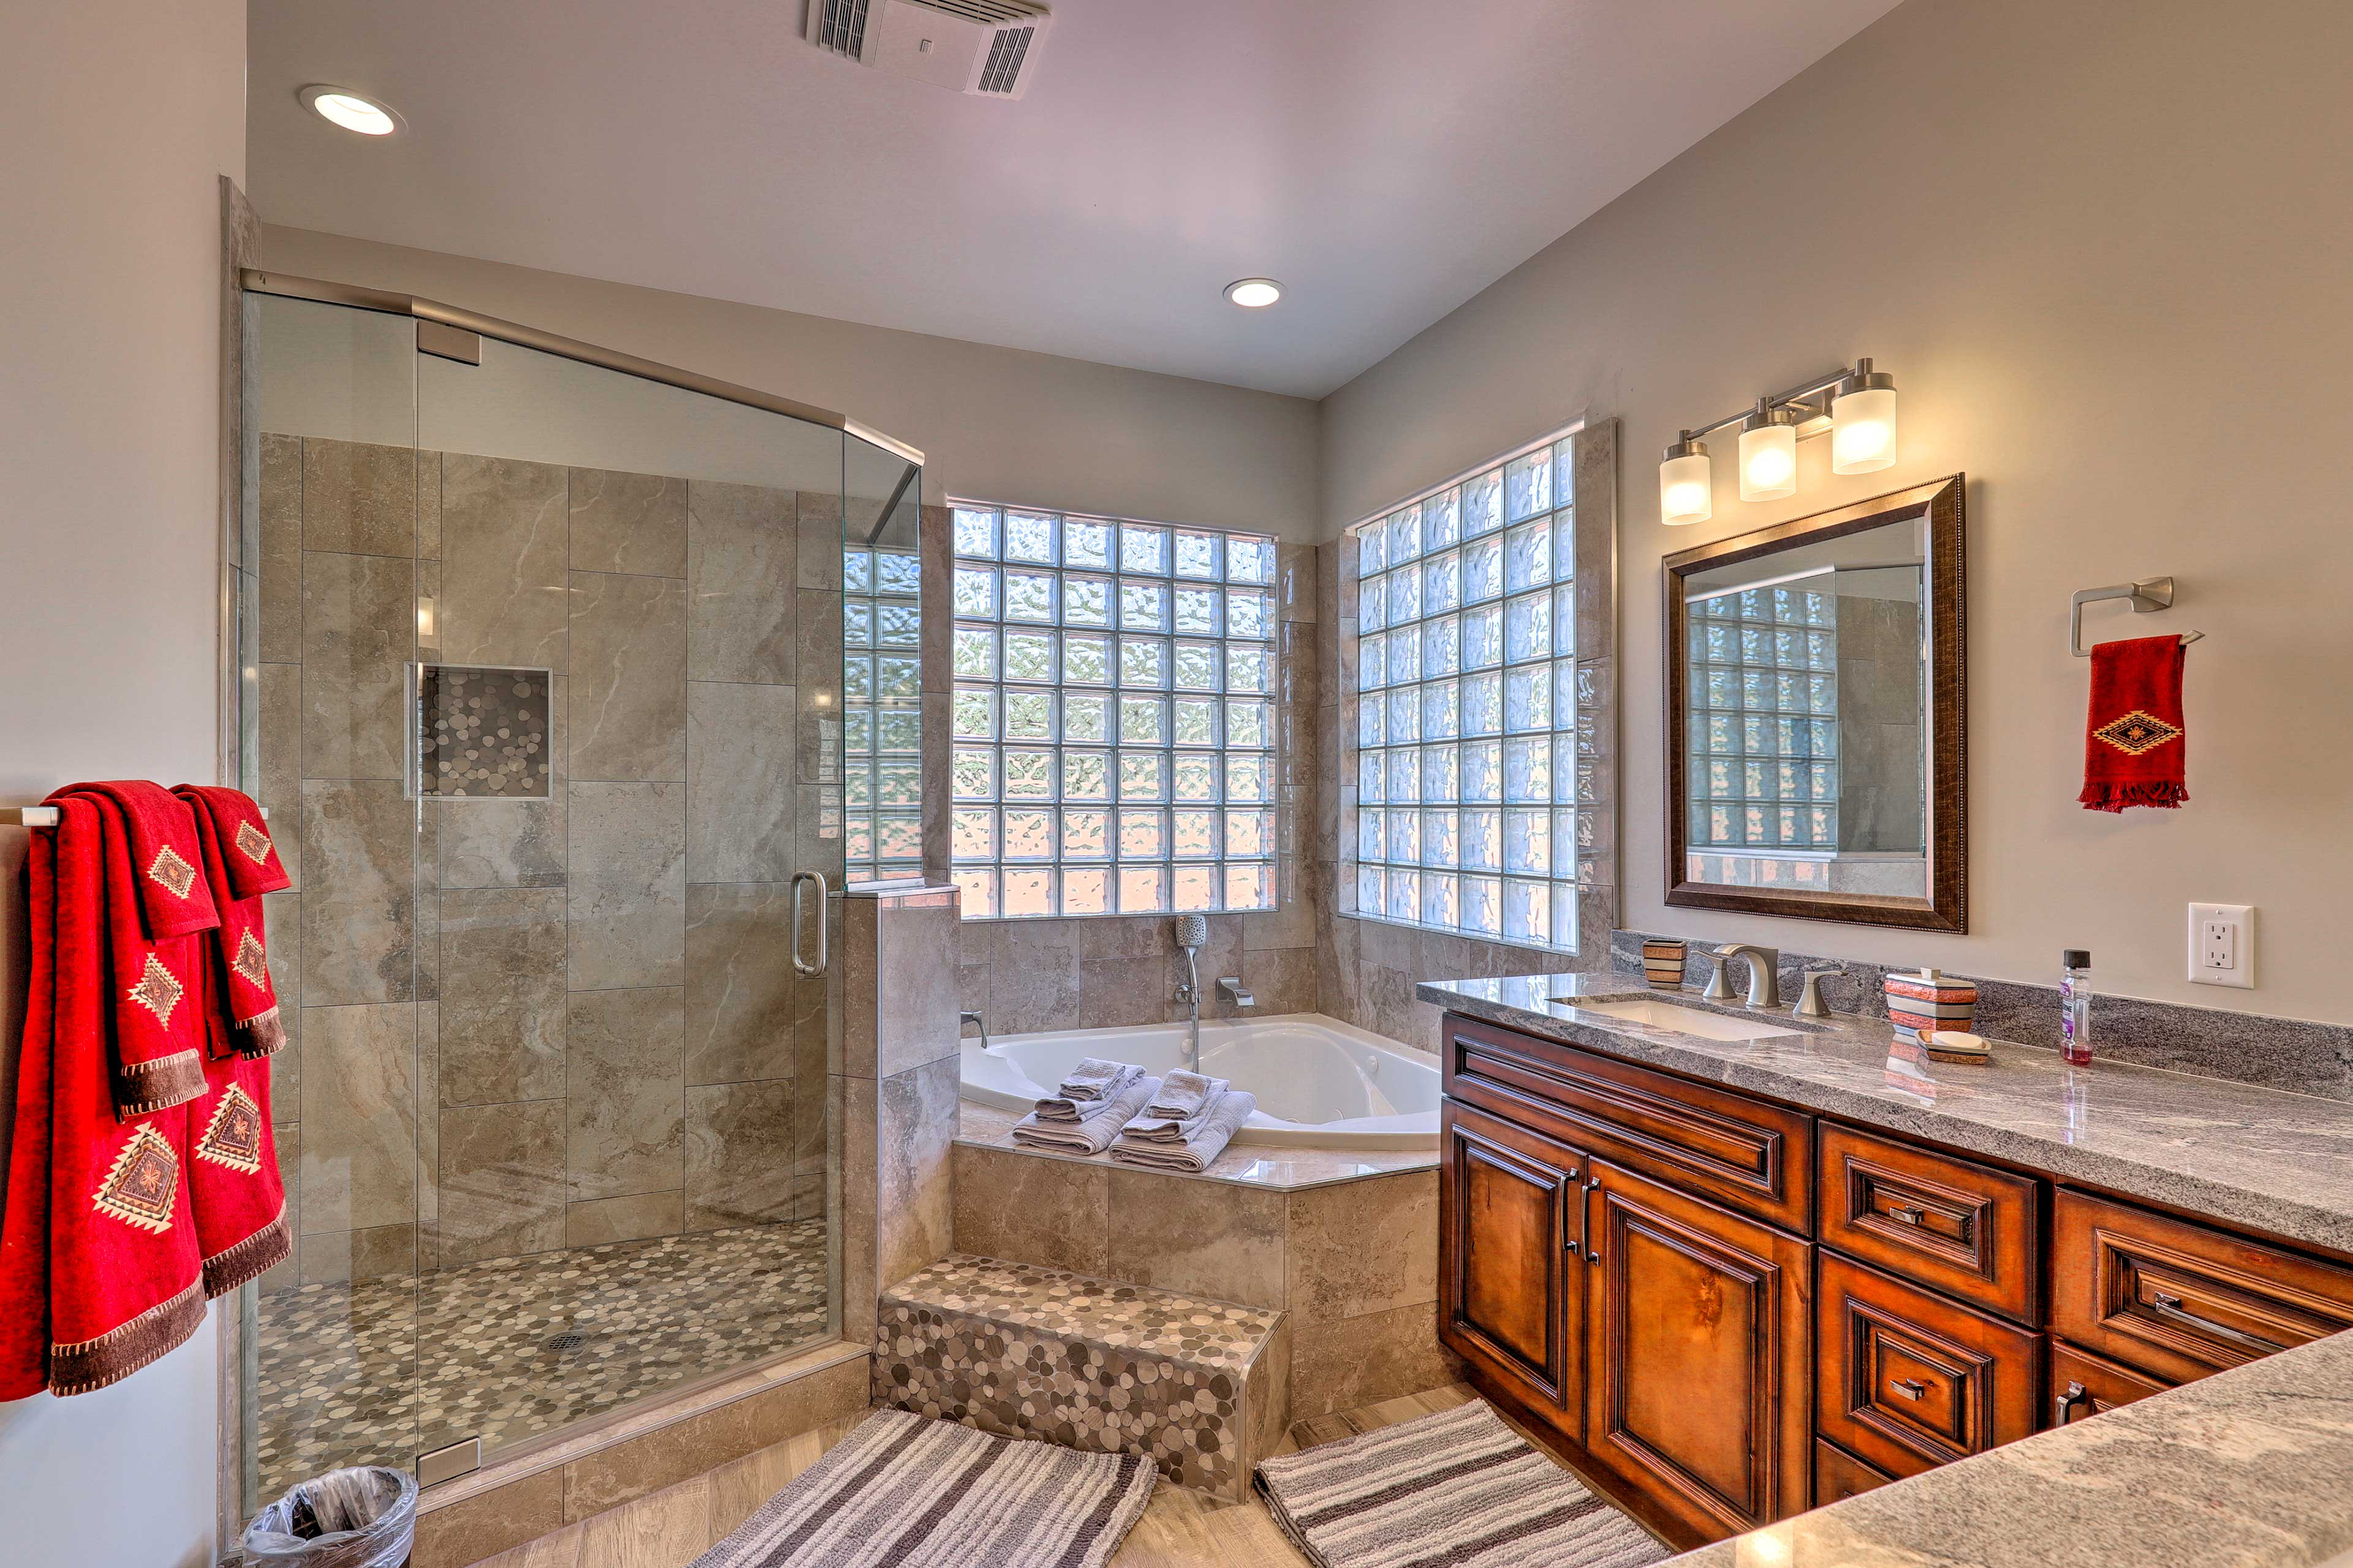 Take a relaxing soak in the master bathroom.